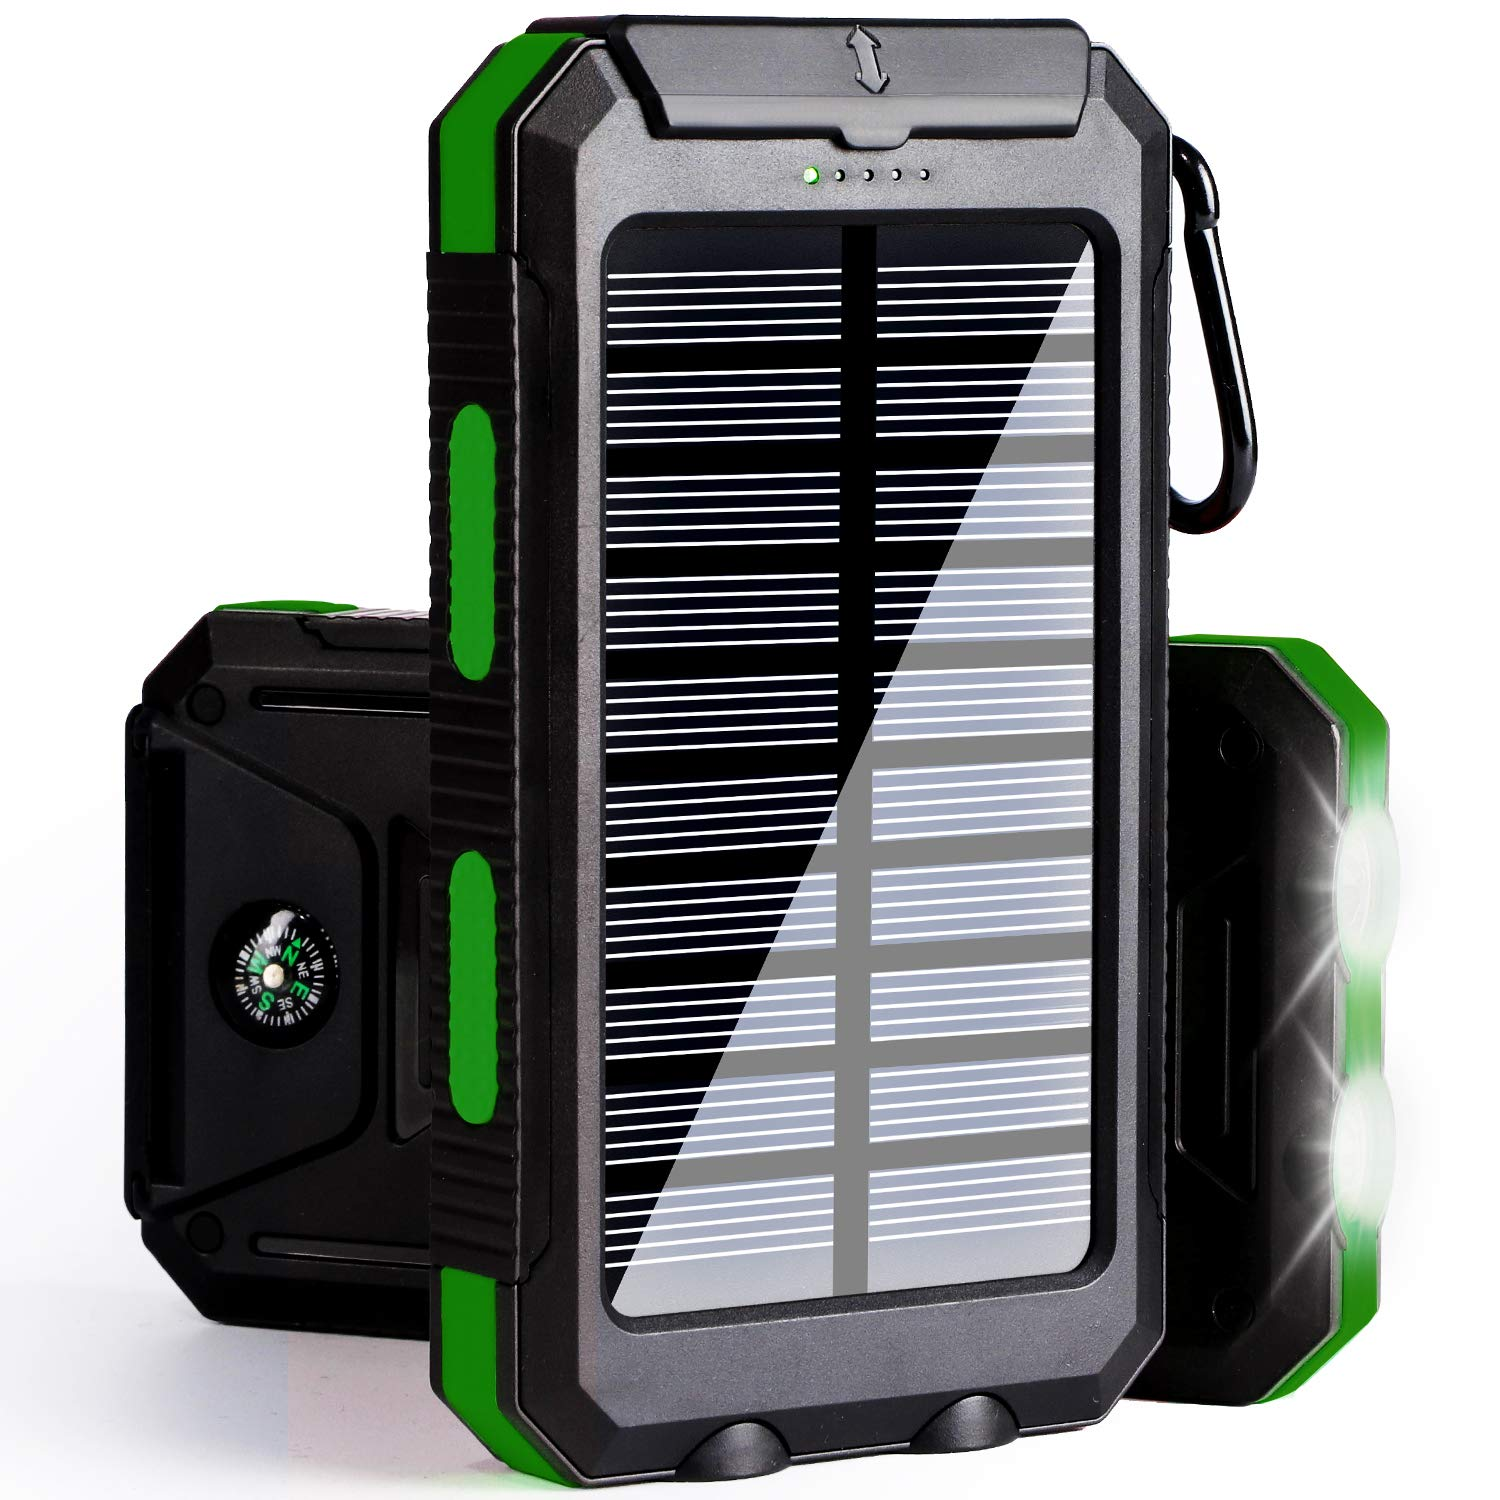 DEVEL Solar Phone Charger, Solar Power Bank, 10000 mAh Portable Power Bank Solar Battery Charger Dual USB Waterproof with 2 Led Light Flashlight Compass for iPhone, ipad, Samsung (Green)